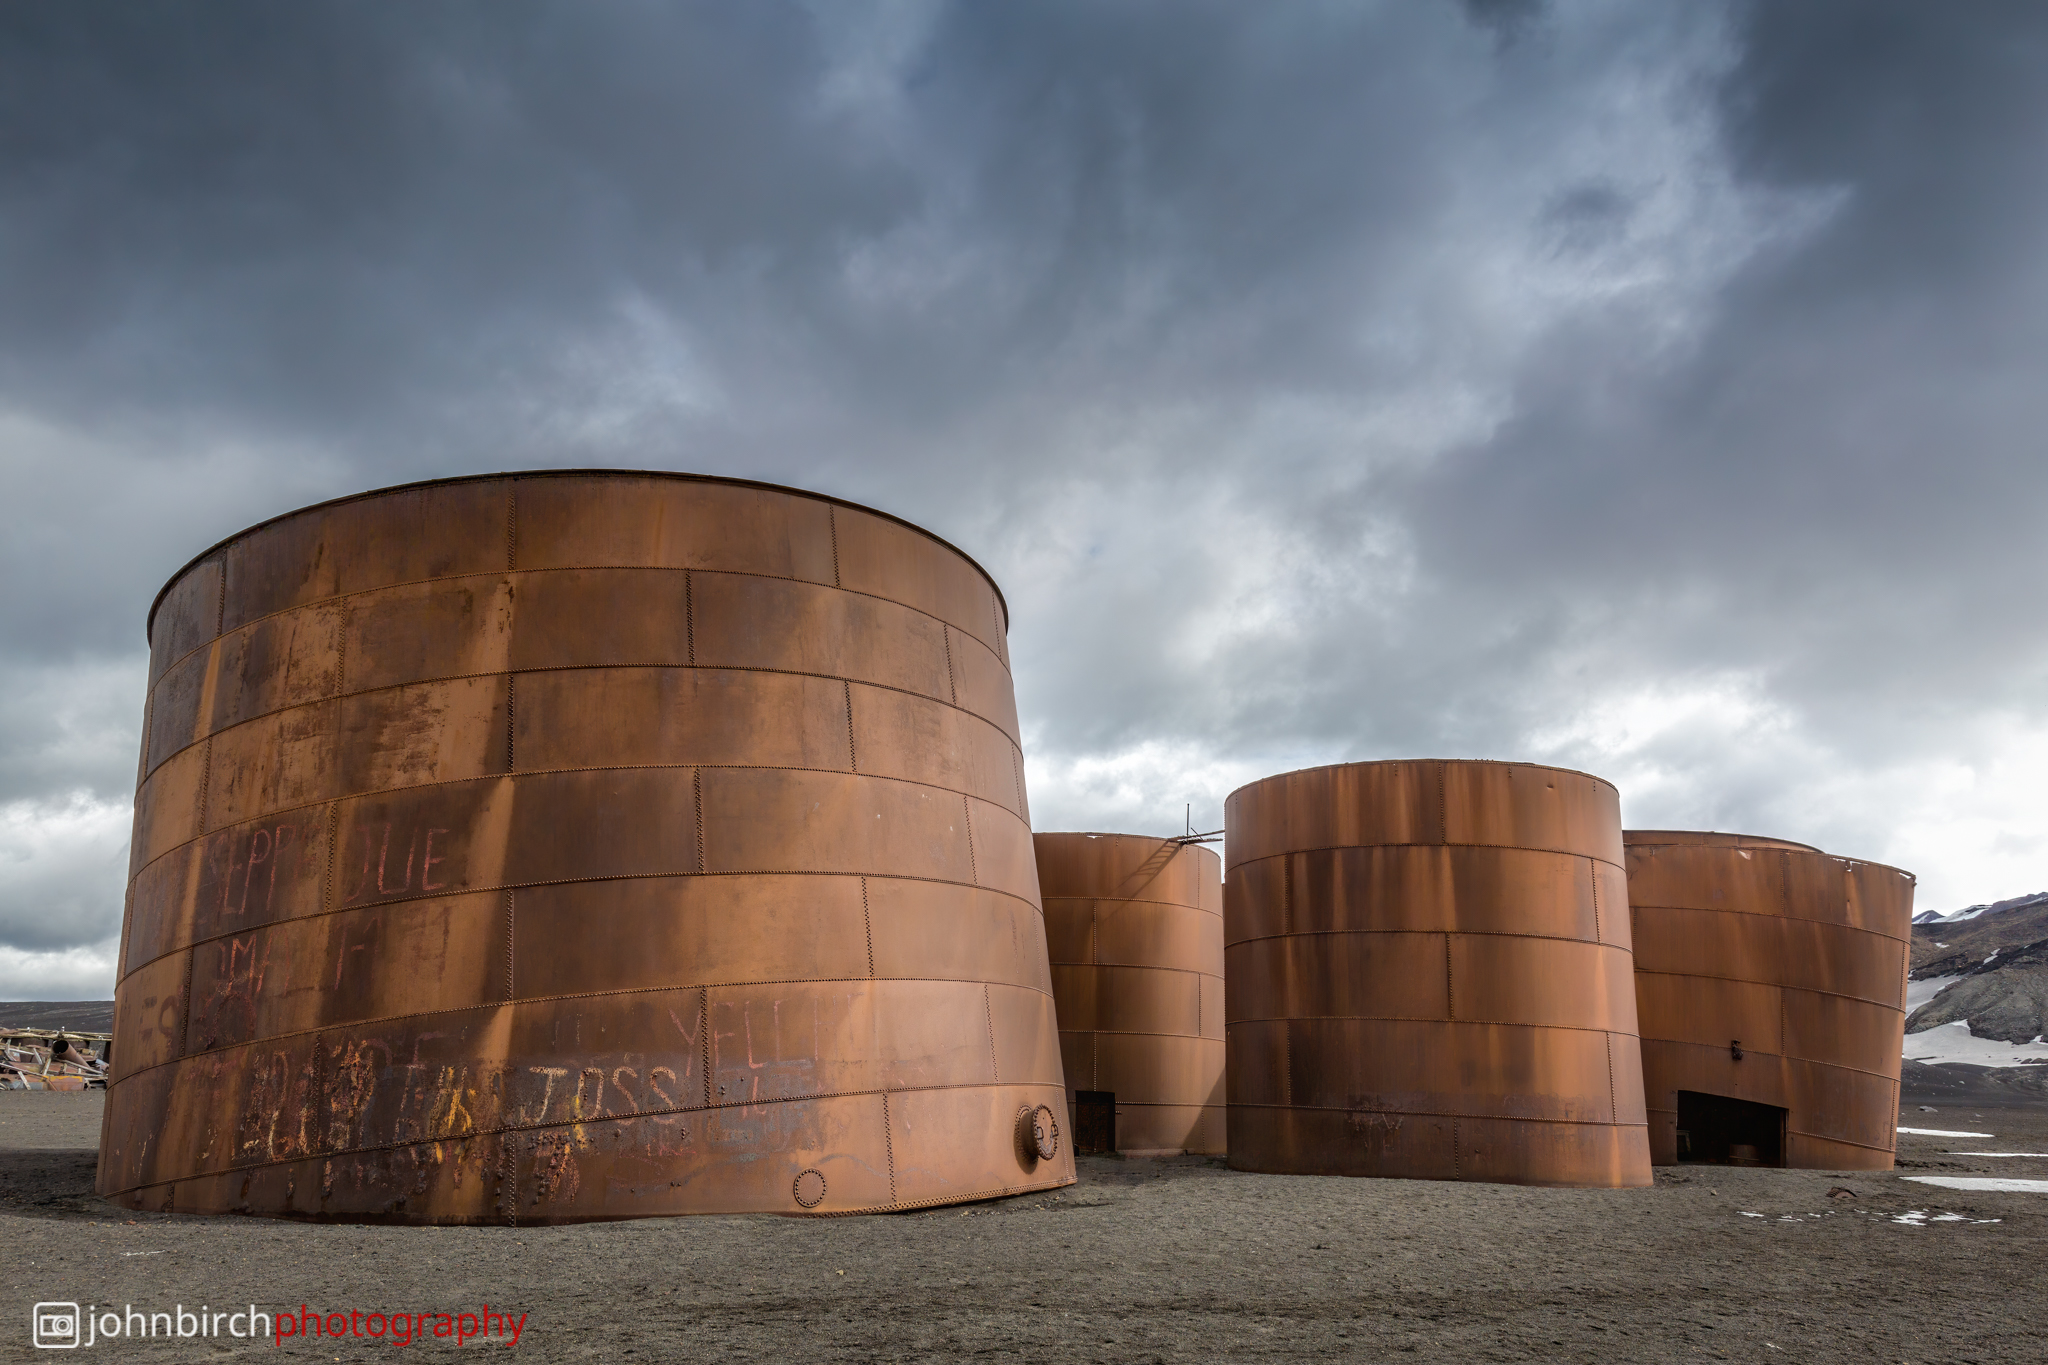 Whaler's Abandoned Oil Tanks